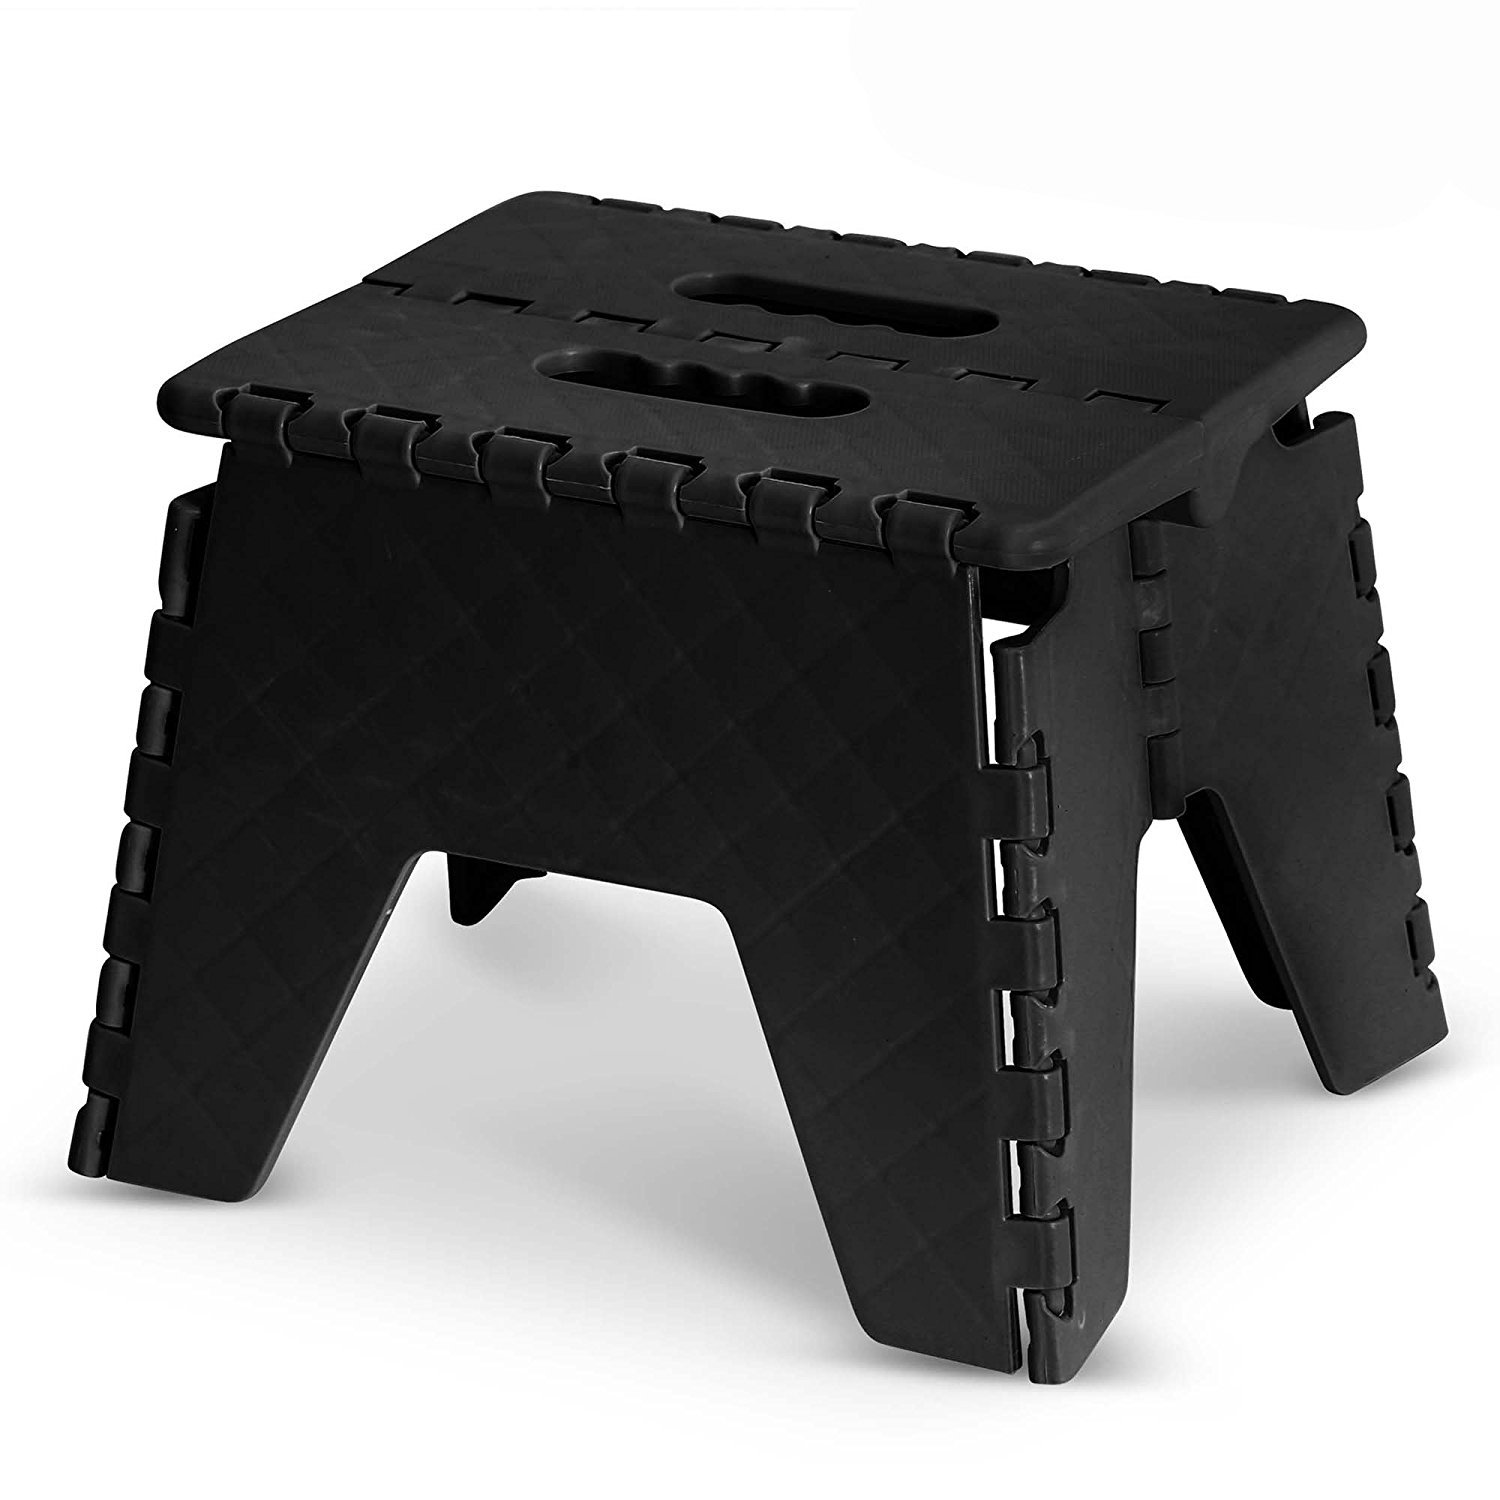 GLOW Heavy Duty Folding Step Stool – Black Strong 9 Inch Plastic Anti Slip Stepping Stool for Kids and Adults - Ideal for Use around the Home, Kitchen and Workplace - Compact and Lightweight Ladder Folds Flat with Carry Handle for Easy Storage and Transpo